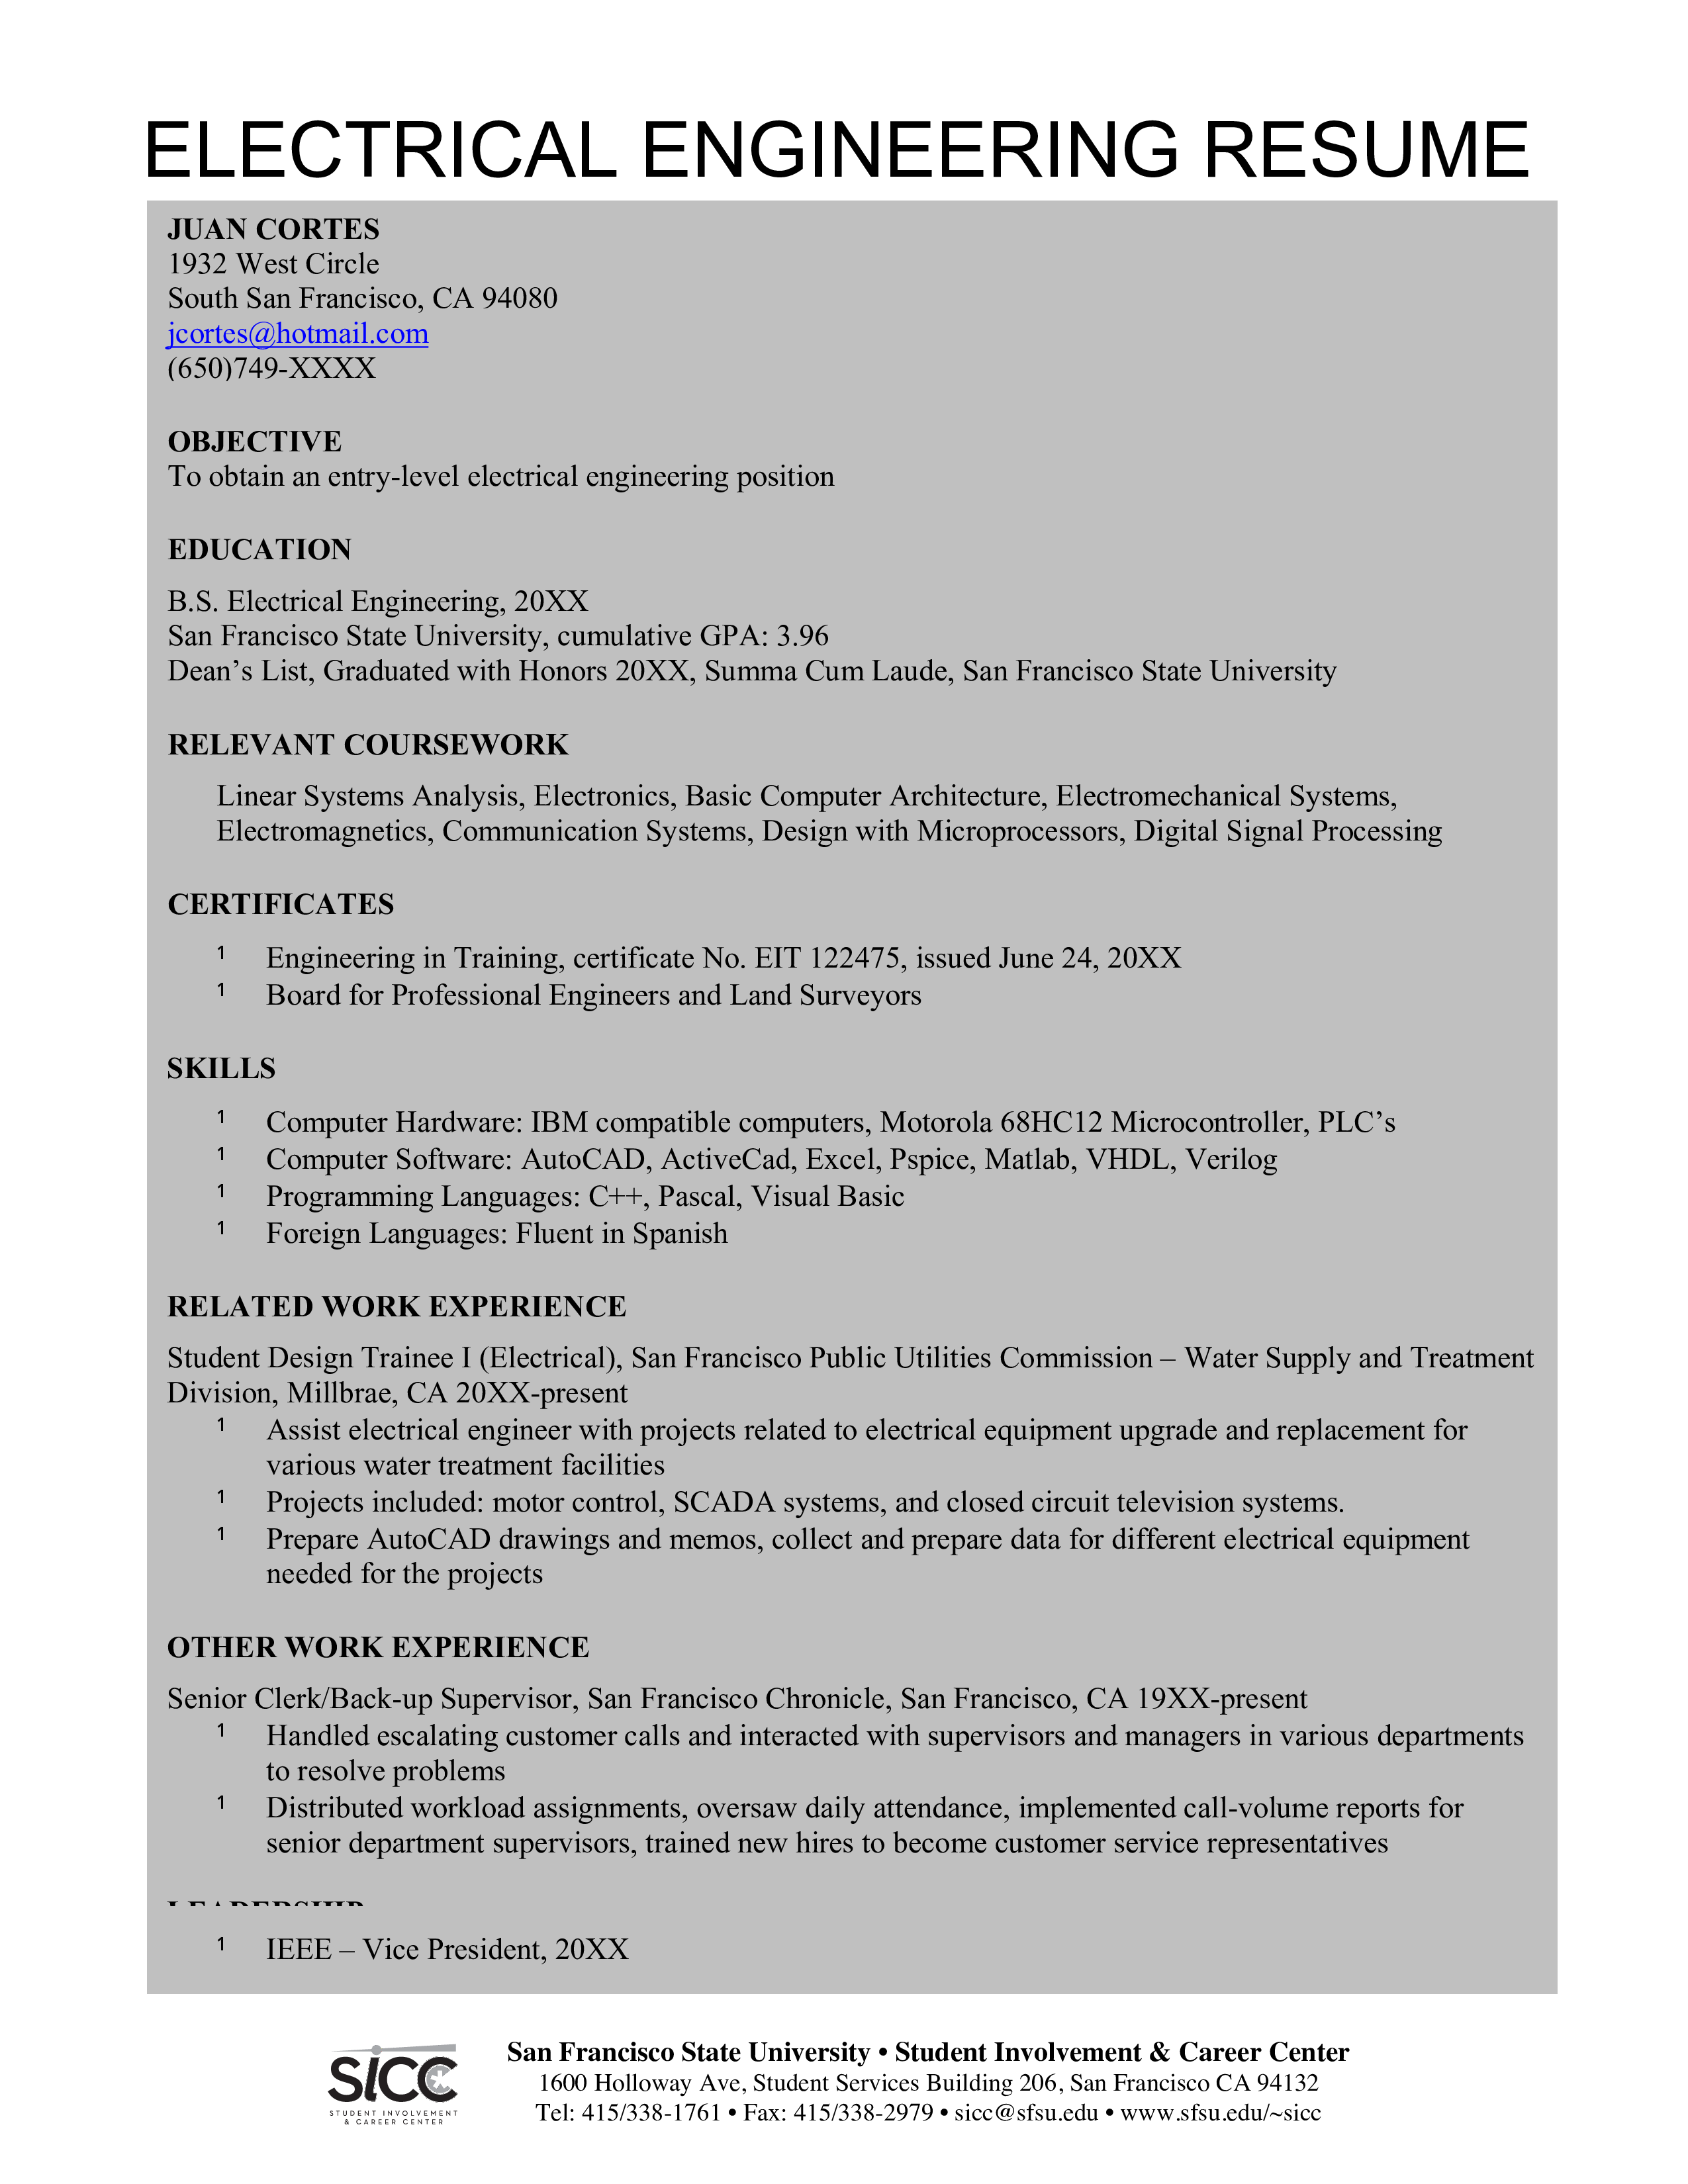 Free Electrical Curriculum Vitae Templates At Allbusinesstemplates Com